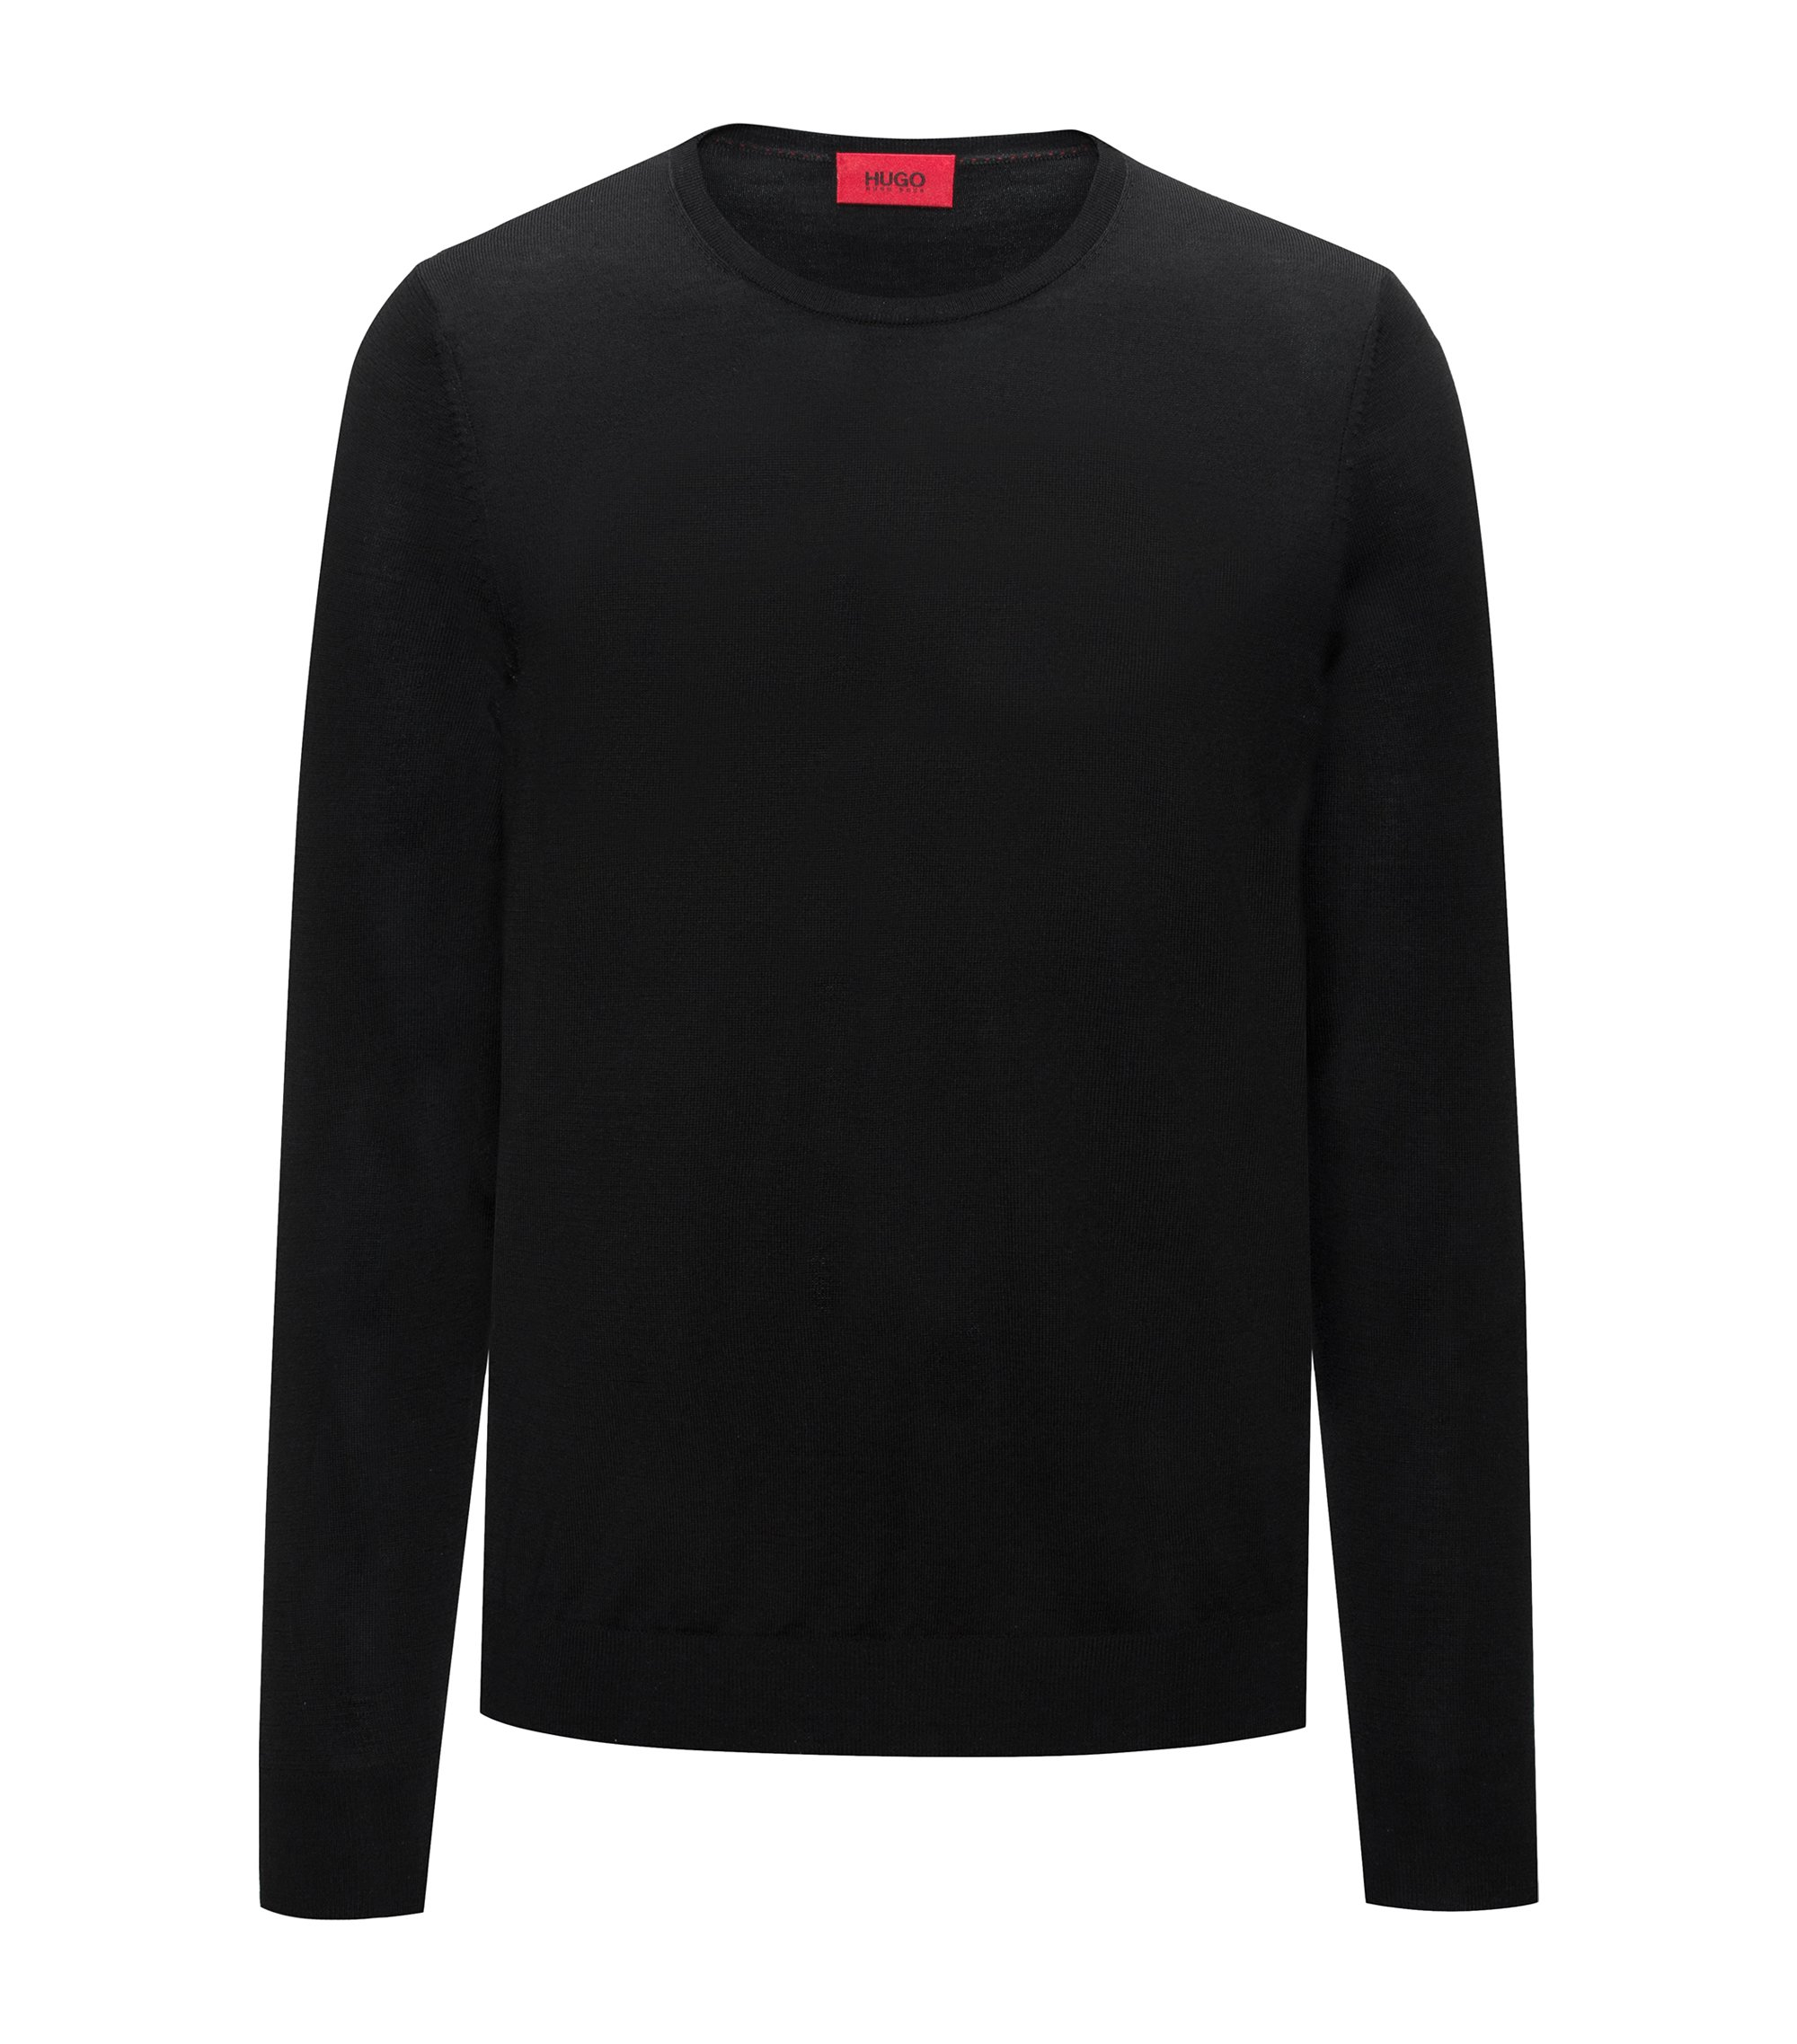 Crew-neck sweater in a lightweight merino wool blend, Black